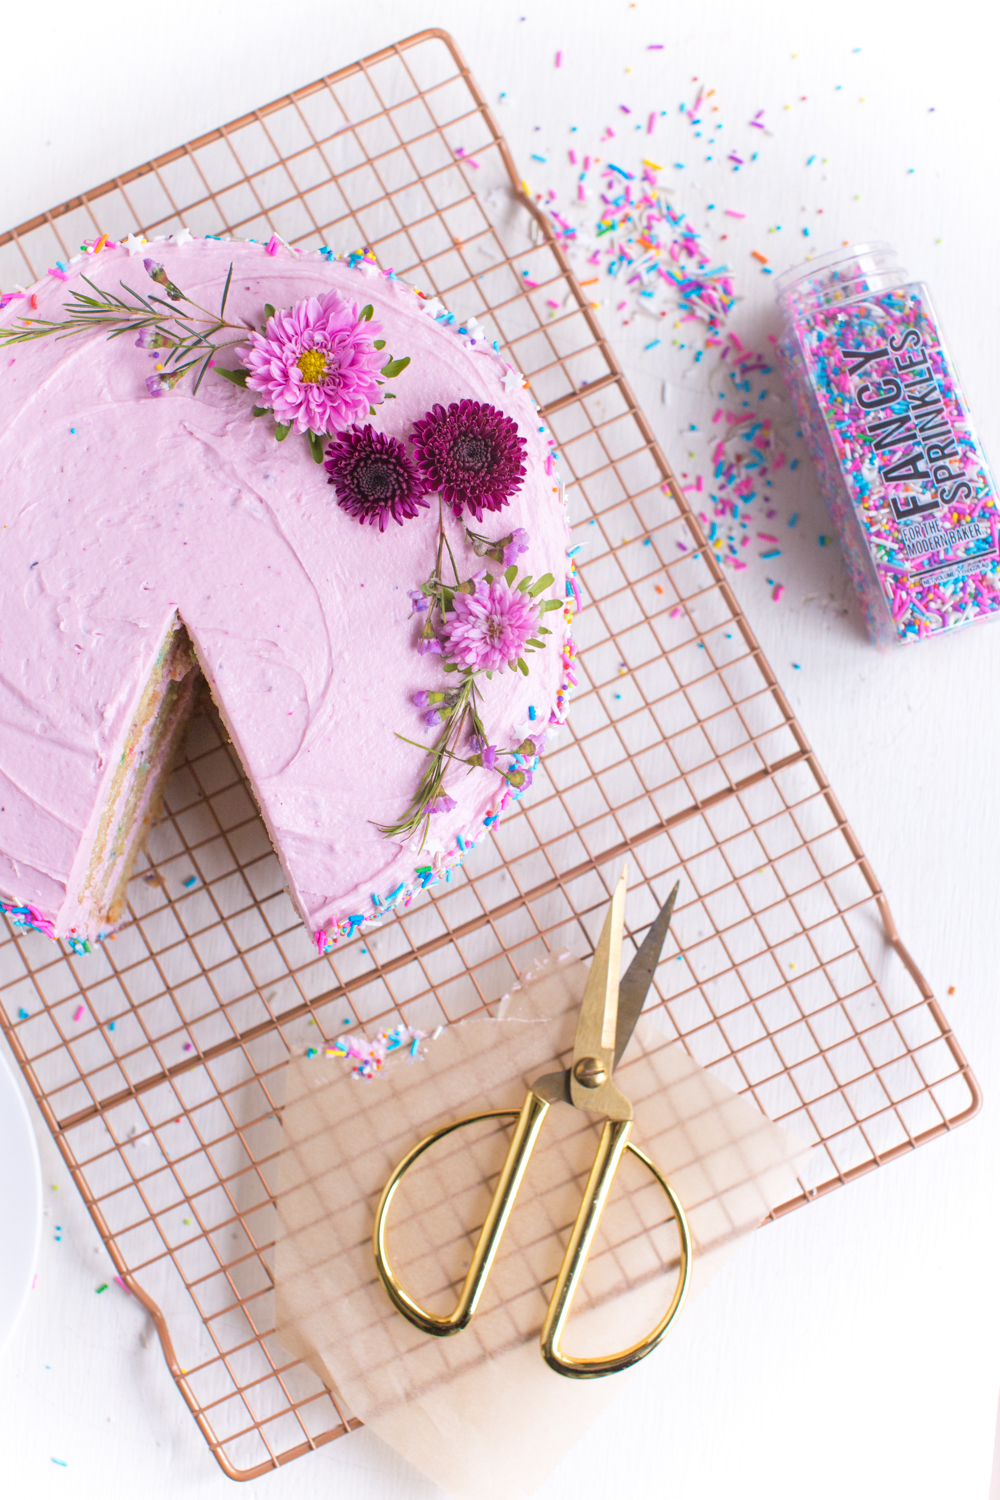 Vegan Birthday Cake | Confetti Cake With Fancy Sprinkles | WorldofVegan.com | #vegan #cake #birthday #confetti #baking #recipe #food